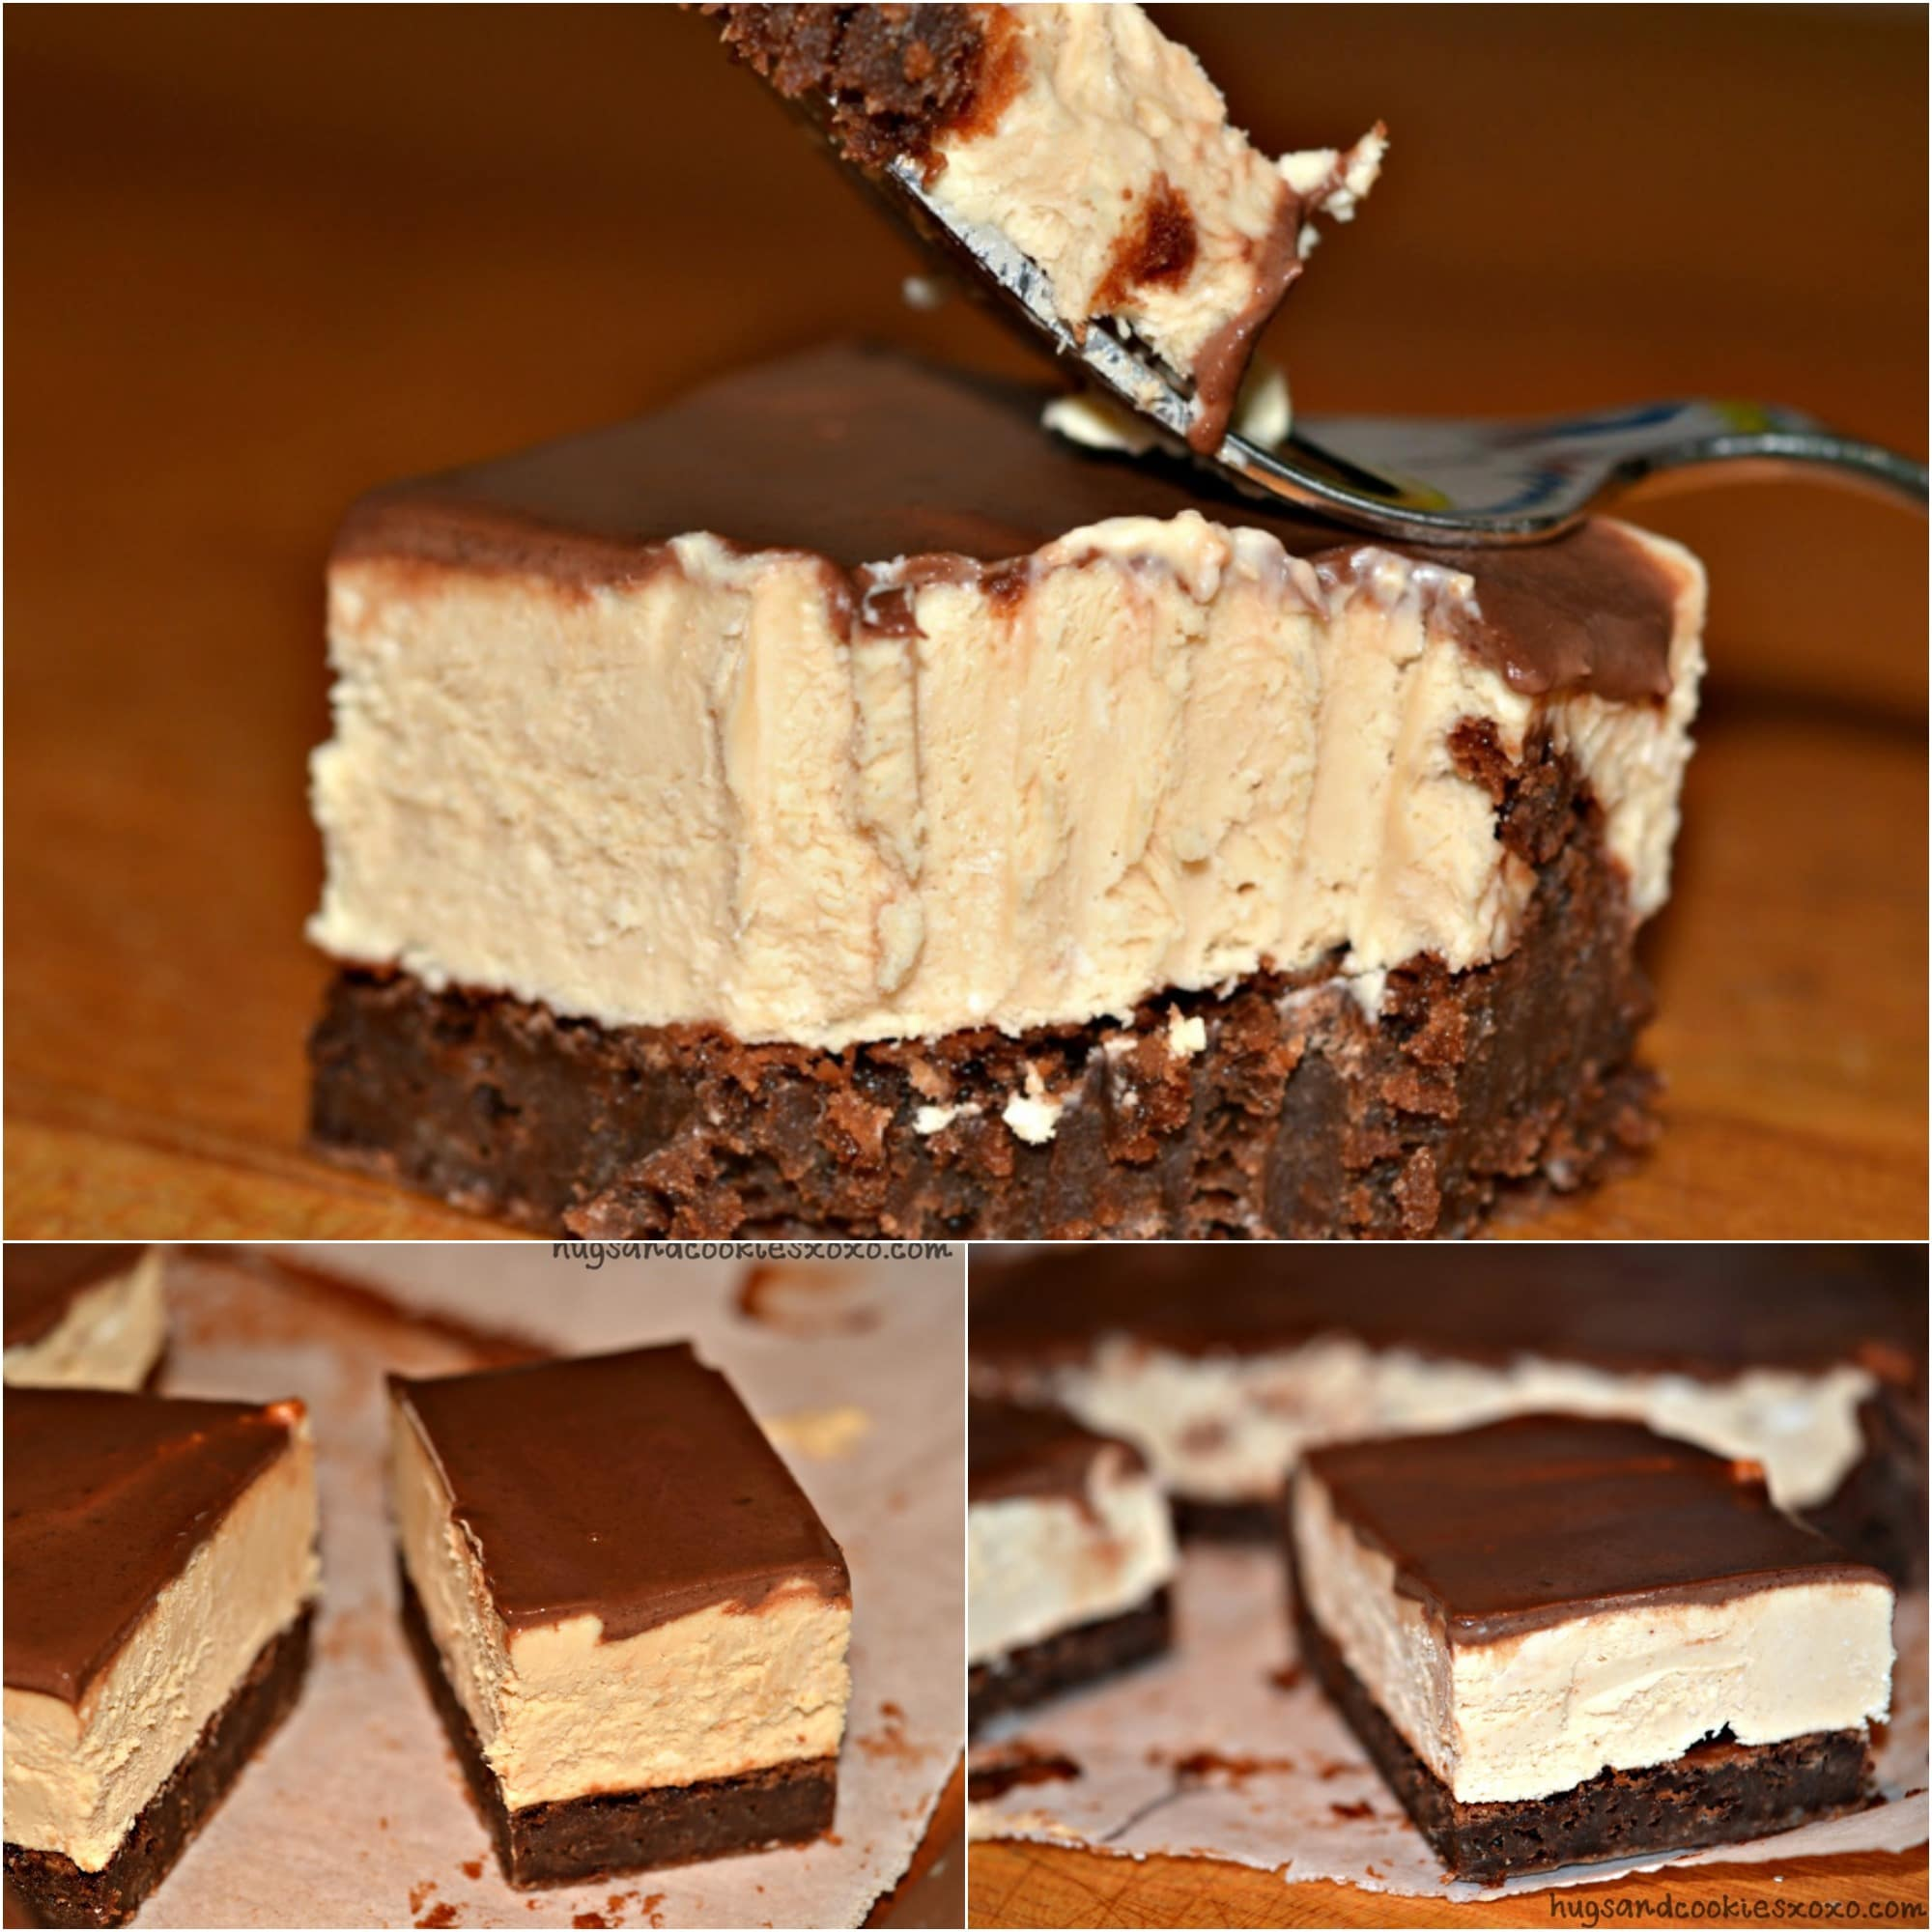 PEANUT BUTTER CHEESECAKE BROWNIE BARS WITH GANACHE